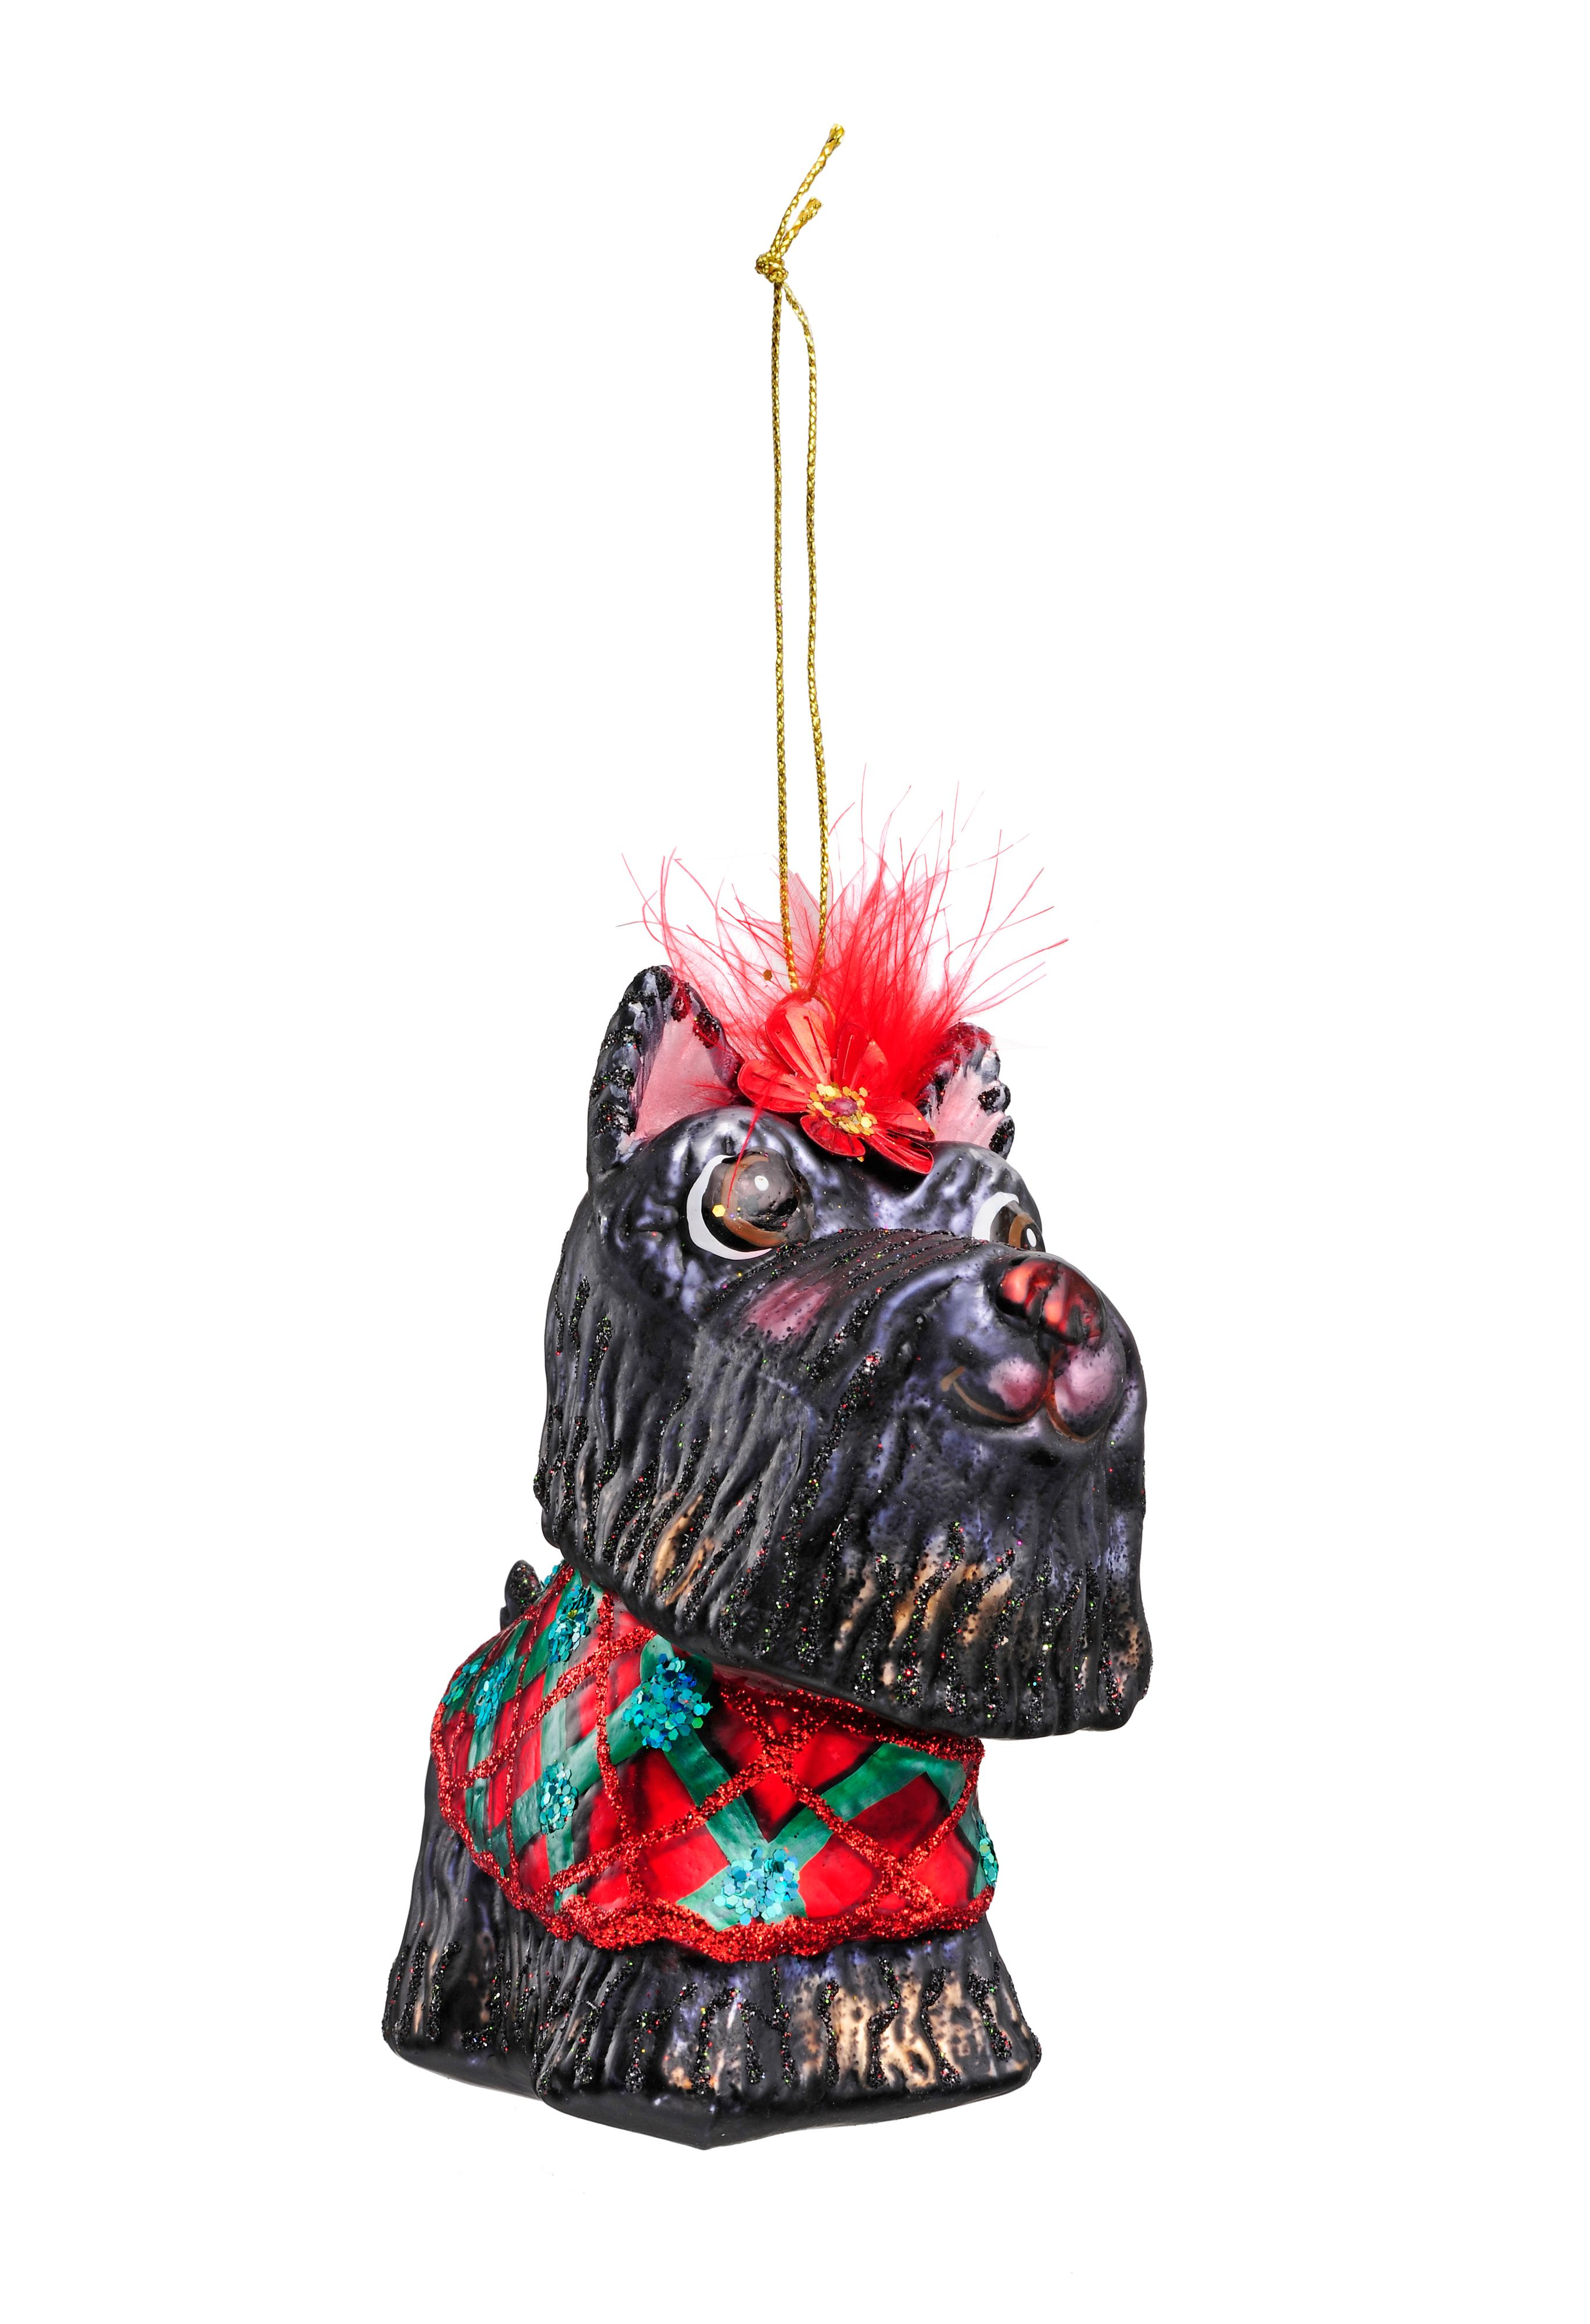 Frosty glass Susan scottish terrier decoration